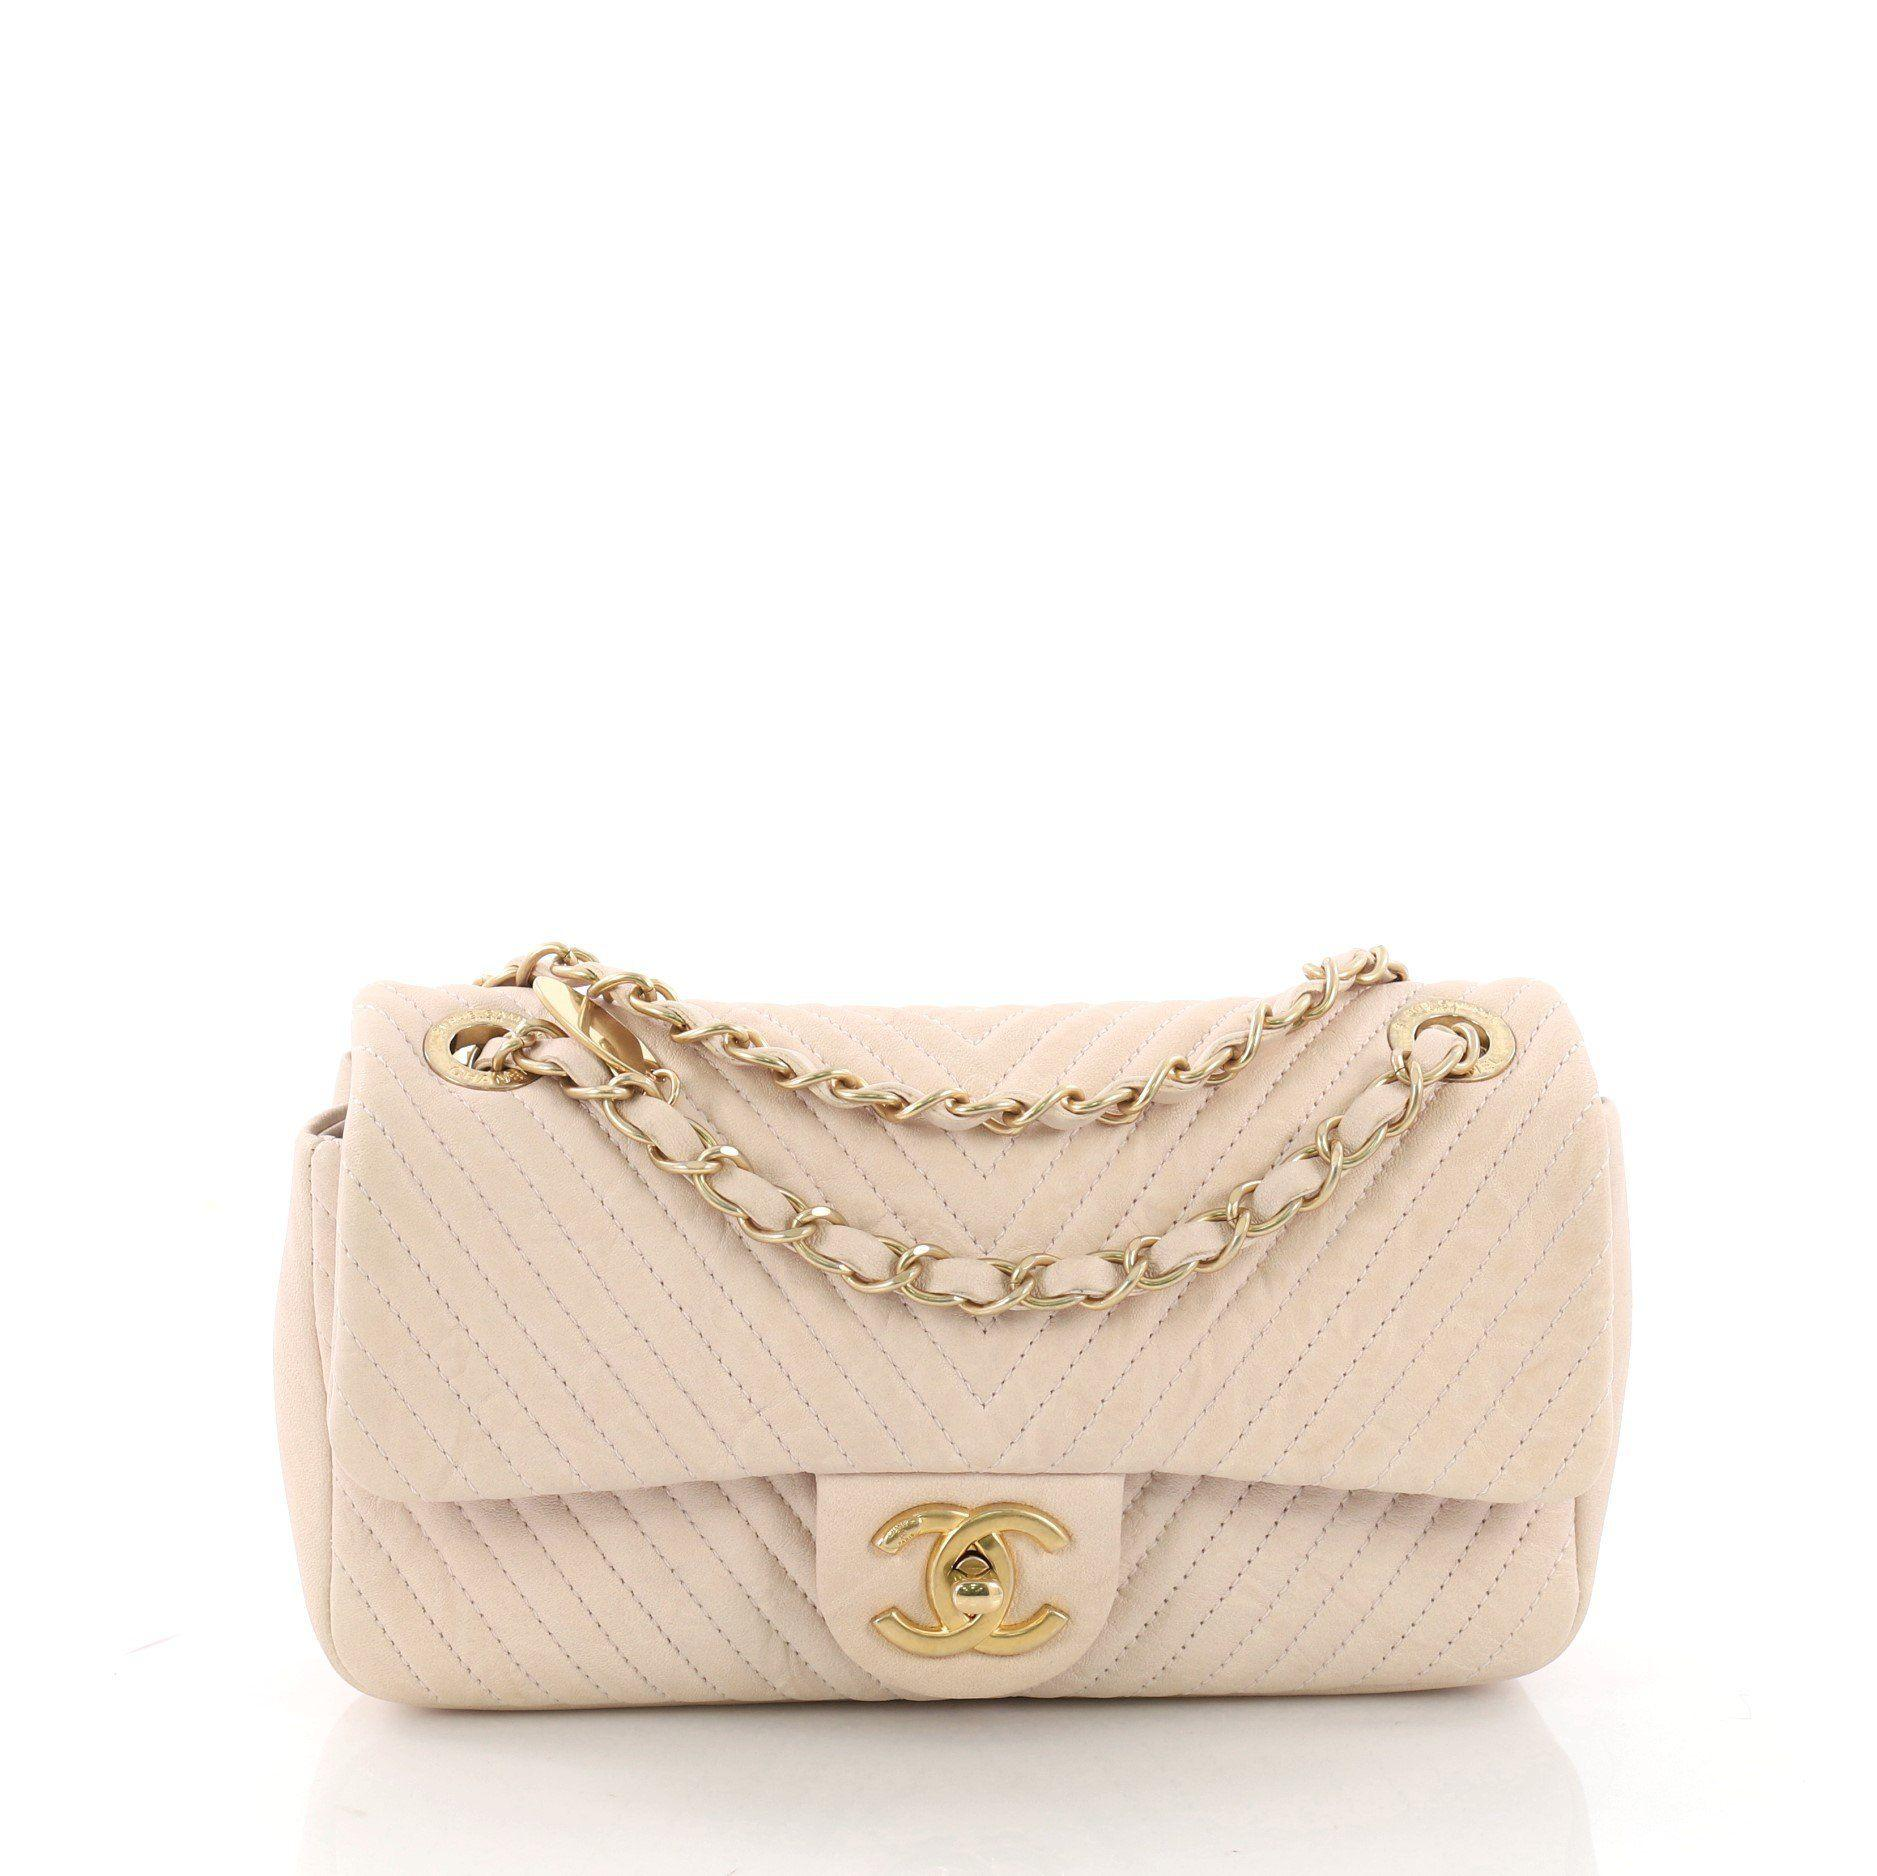 Chanel. Women s Pre Owned Medallion Charm Flap Bag Chevron Wrinkled Lambskin  Small 911f9a661